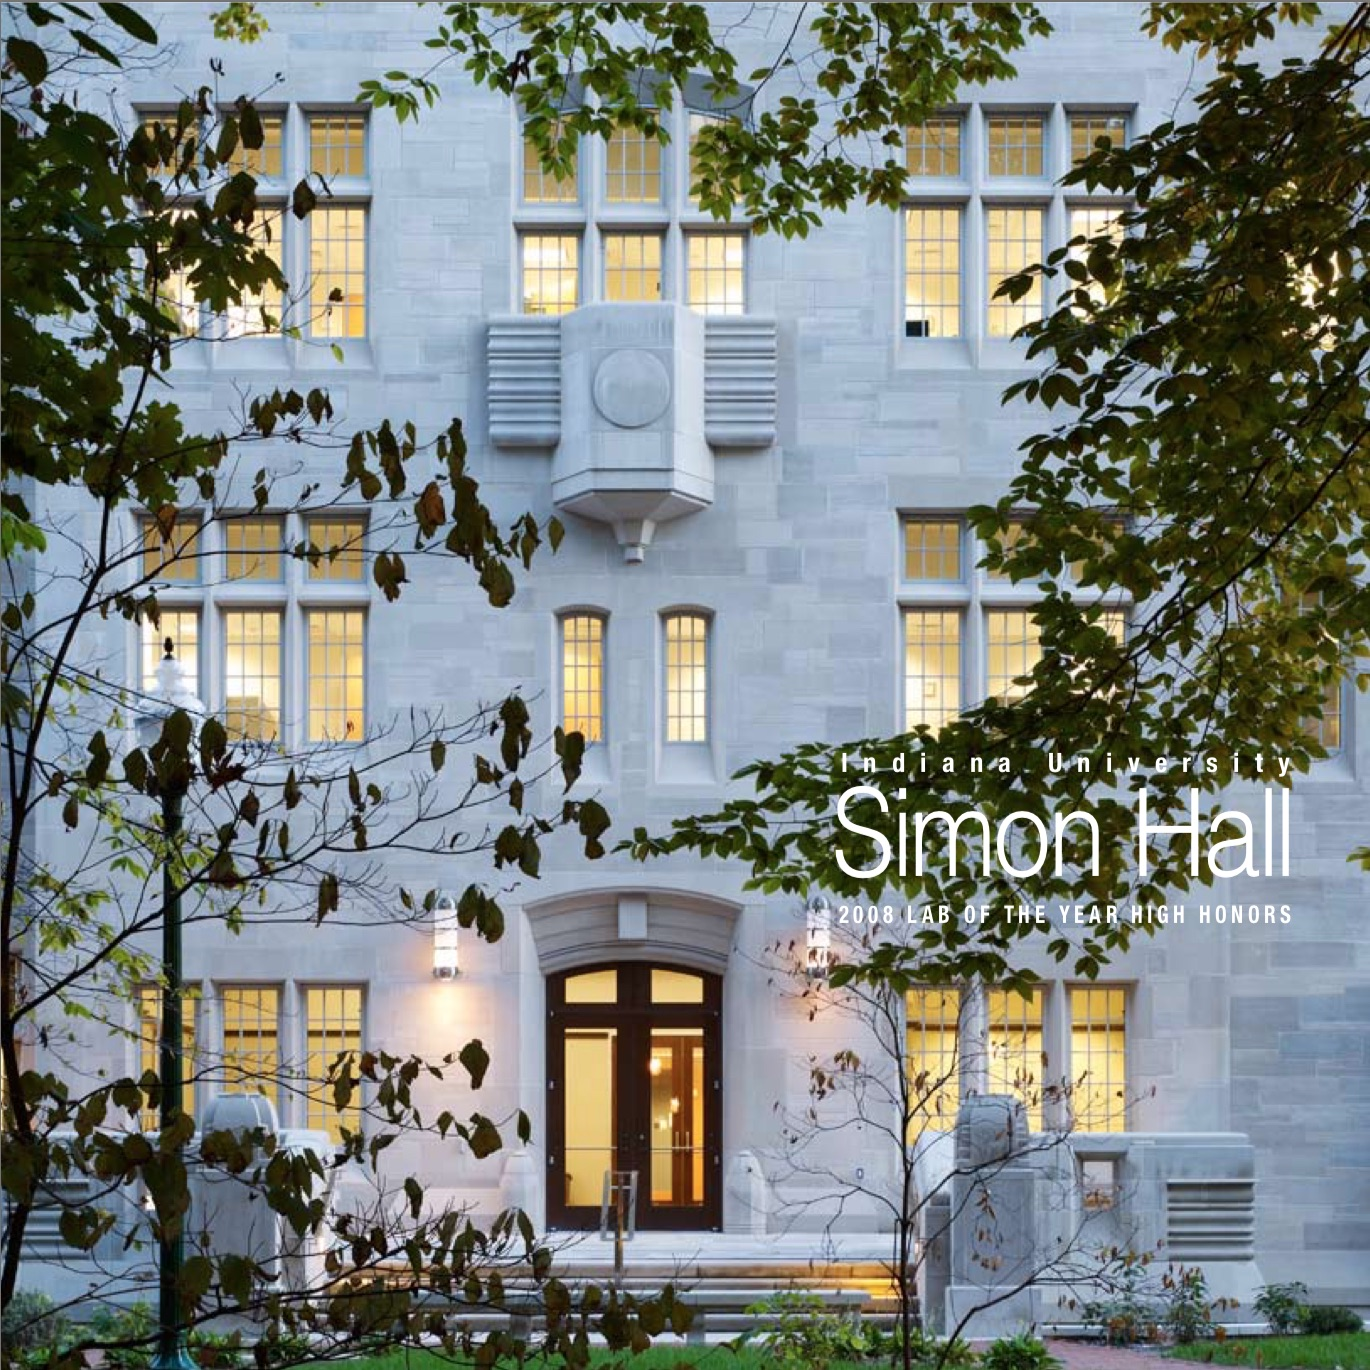 High Honors - Indiana University's Simon Hall